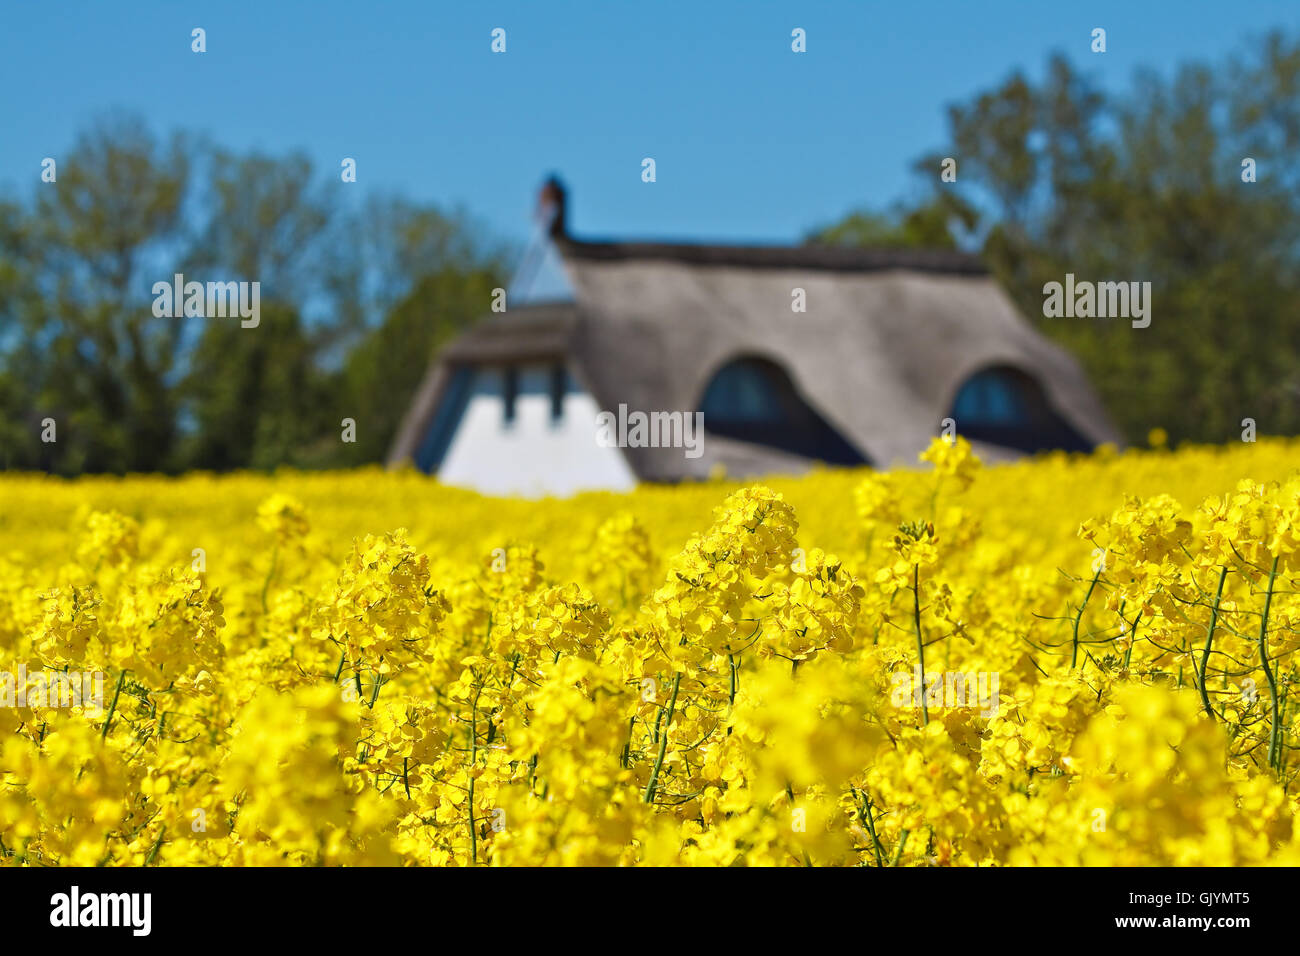 house on the sidelines - Stock Image